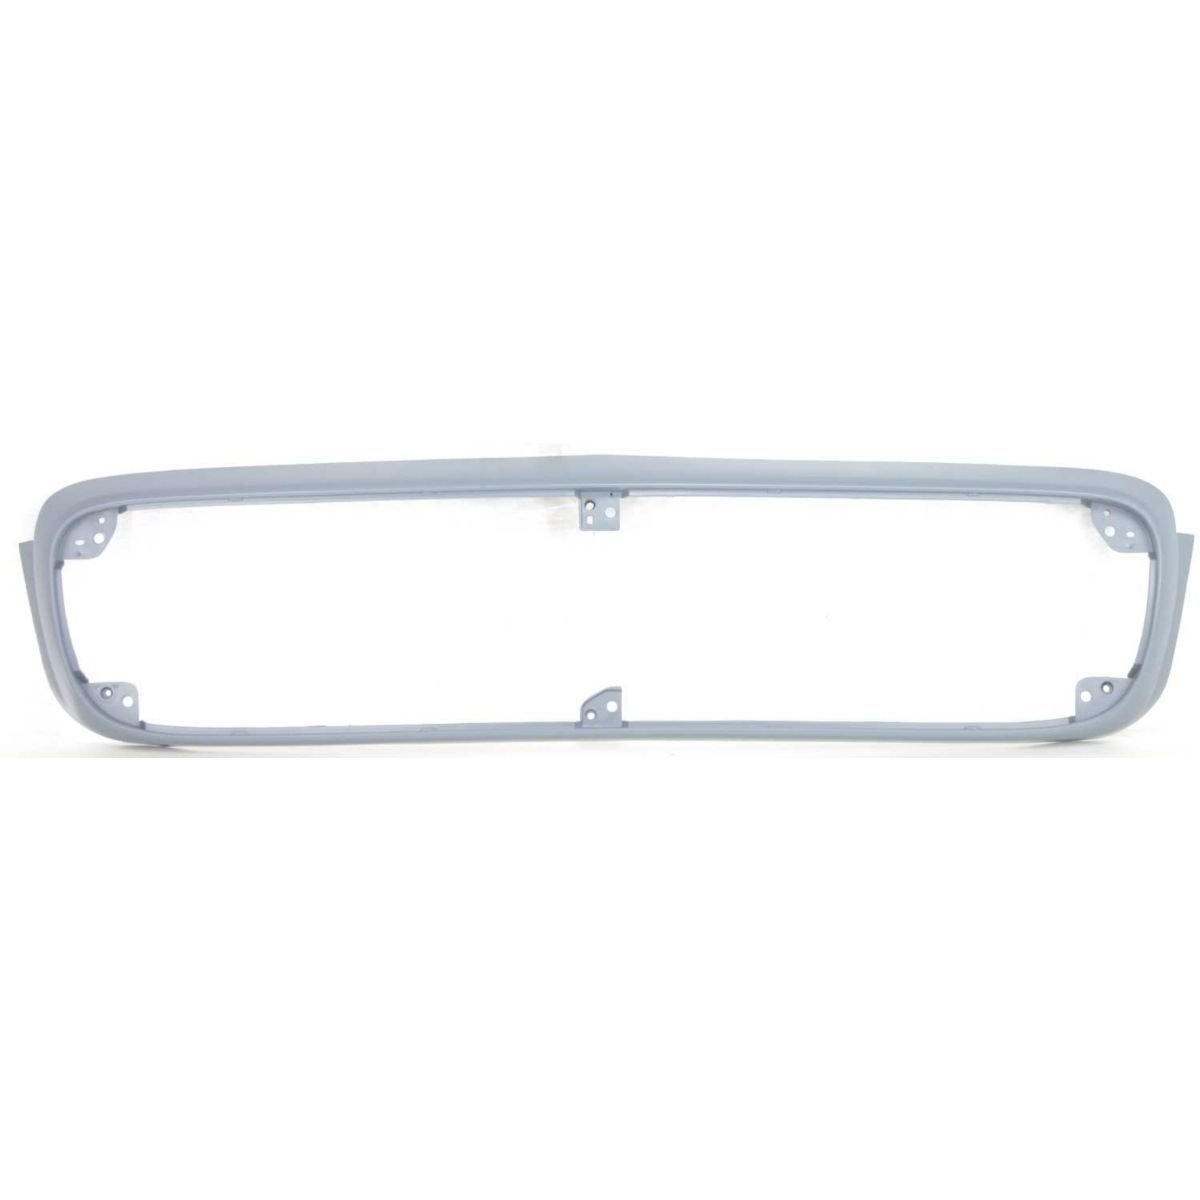 DAT 92-96 BUICK LESABRE GRAY GRILLE GRILL FRAME GM1200329